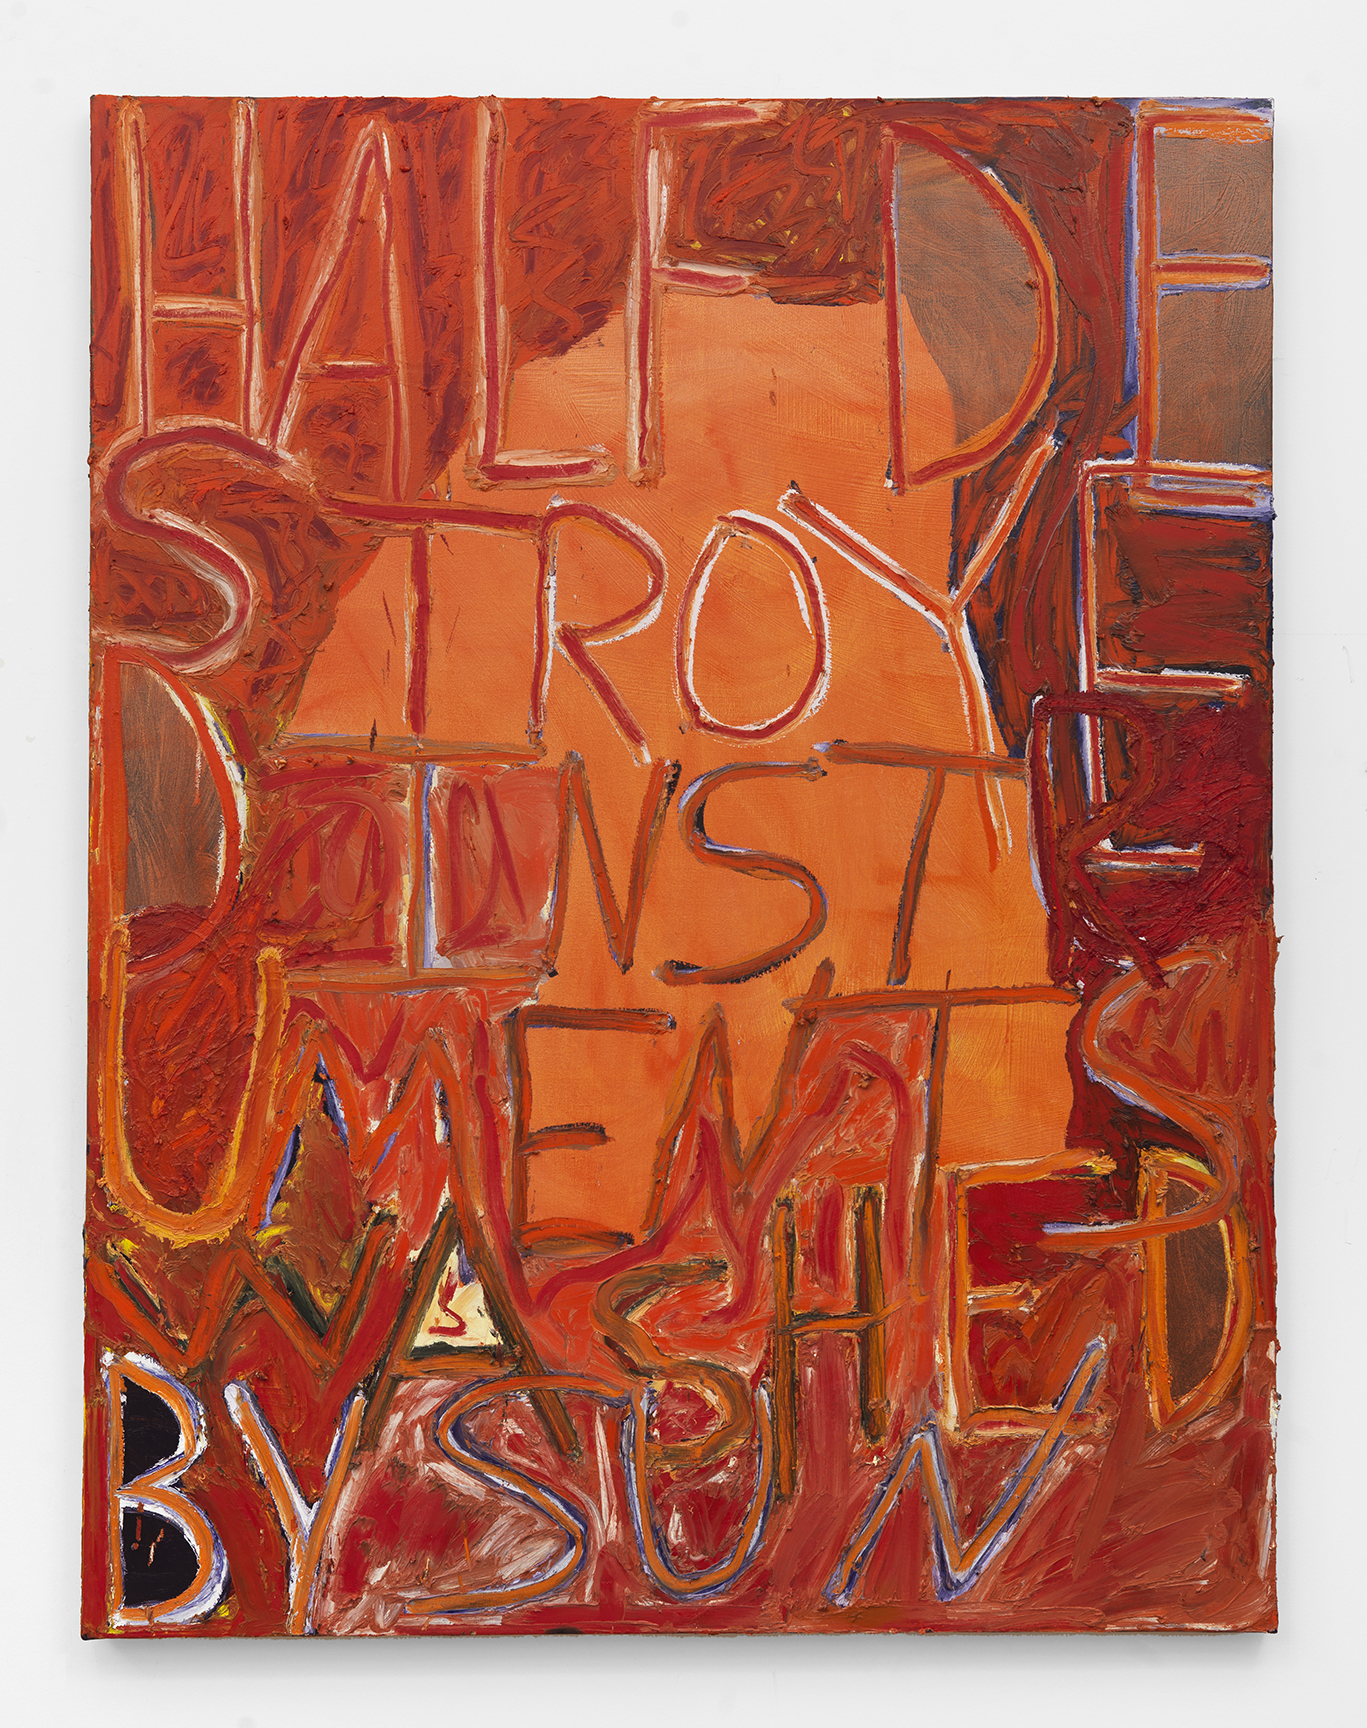 Half Destroyed Instruments Washed By Sun, 2018 Oil and Acrylic on canvas 57 x 43 inches